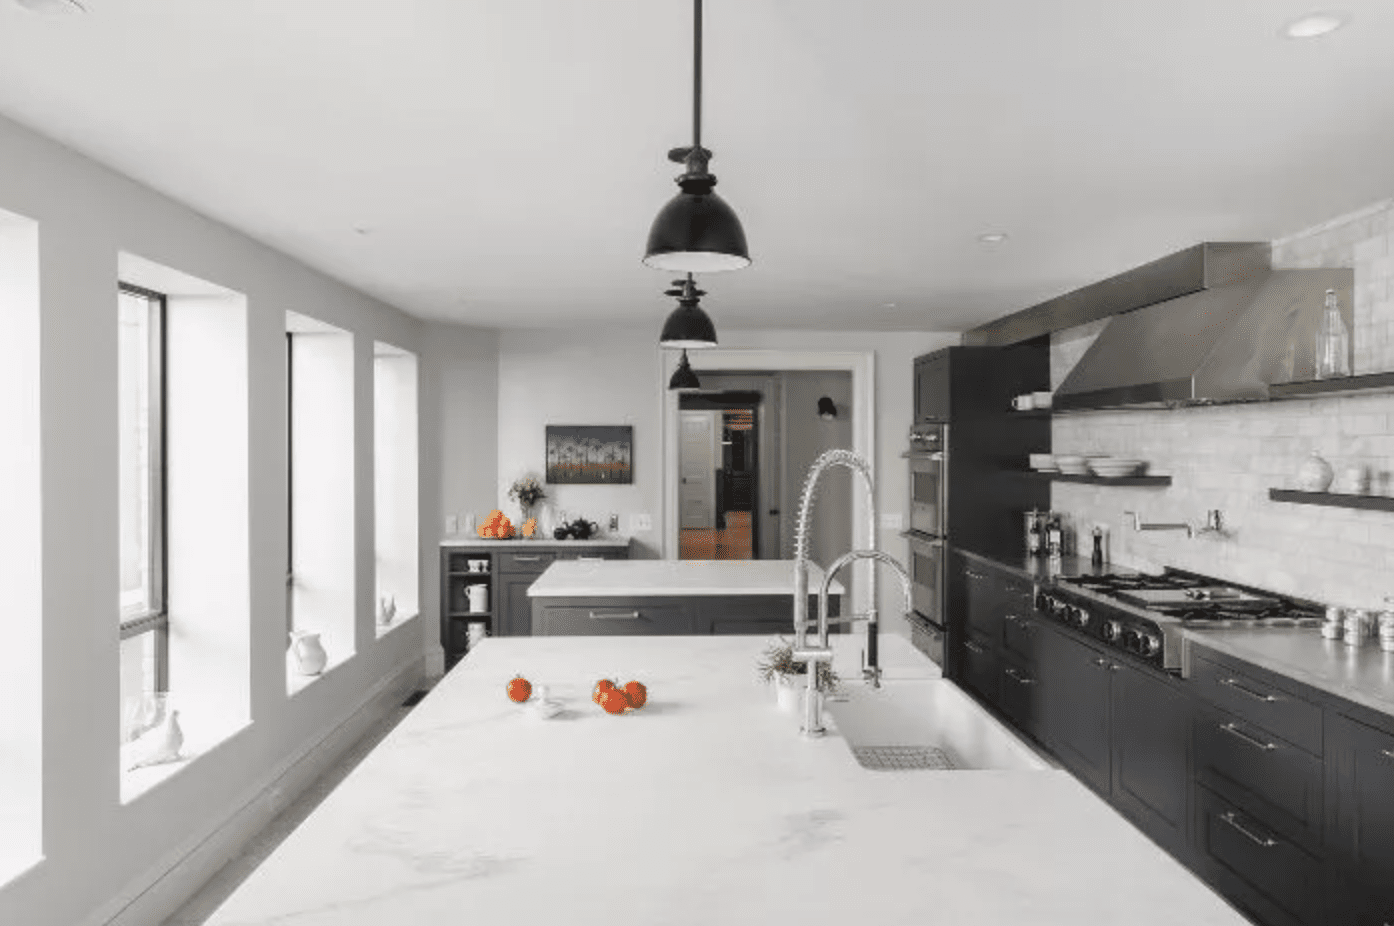 All white kitchen with black pendant lights and dark cabinetry